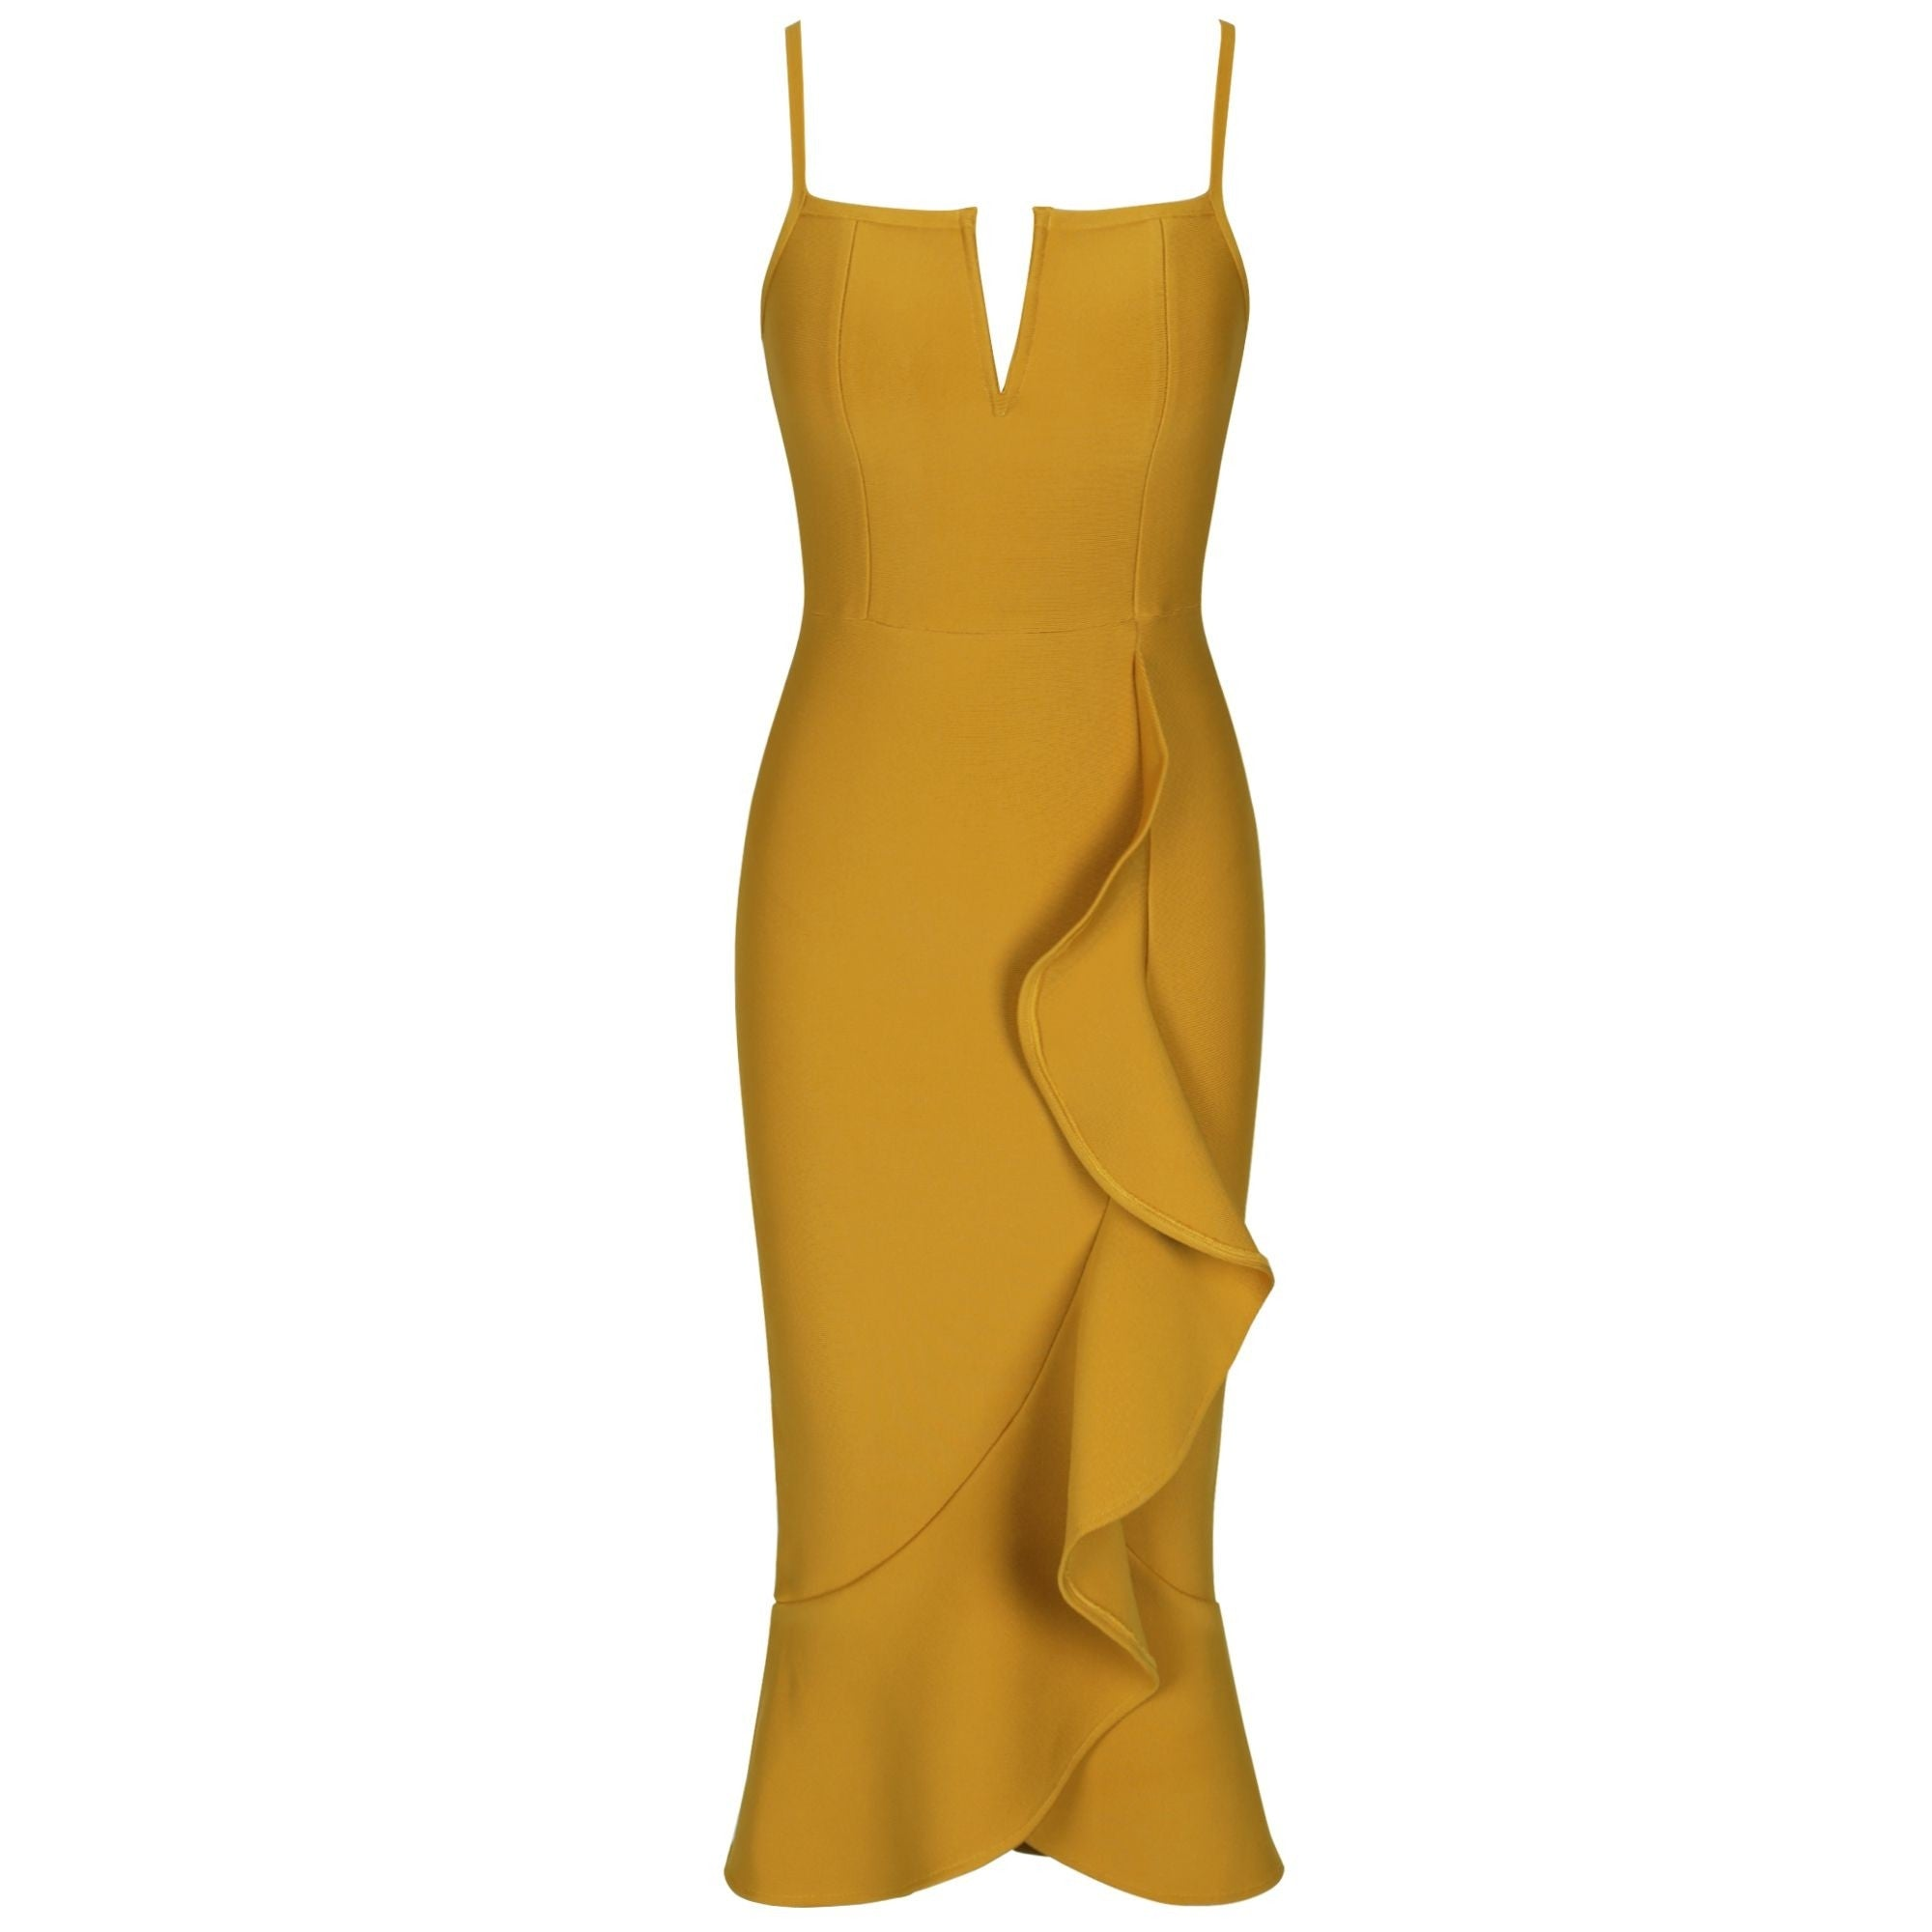 Ashlyn Ginger Yellow Sleeveless Bandage Dress